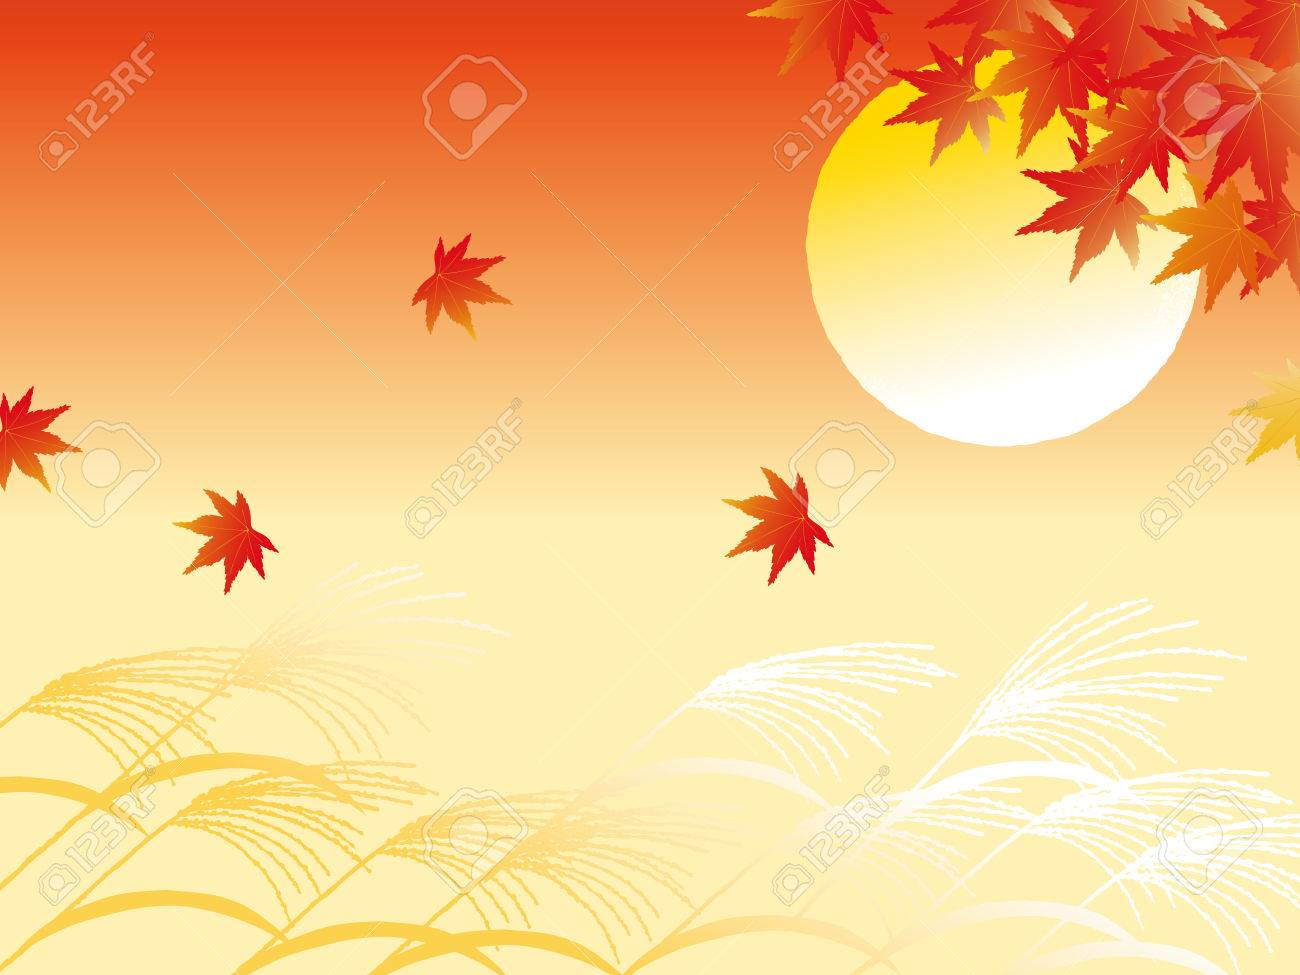 Autumn leaves and full moon - 63387189